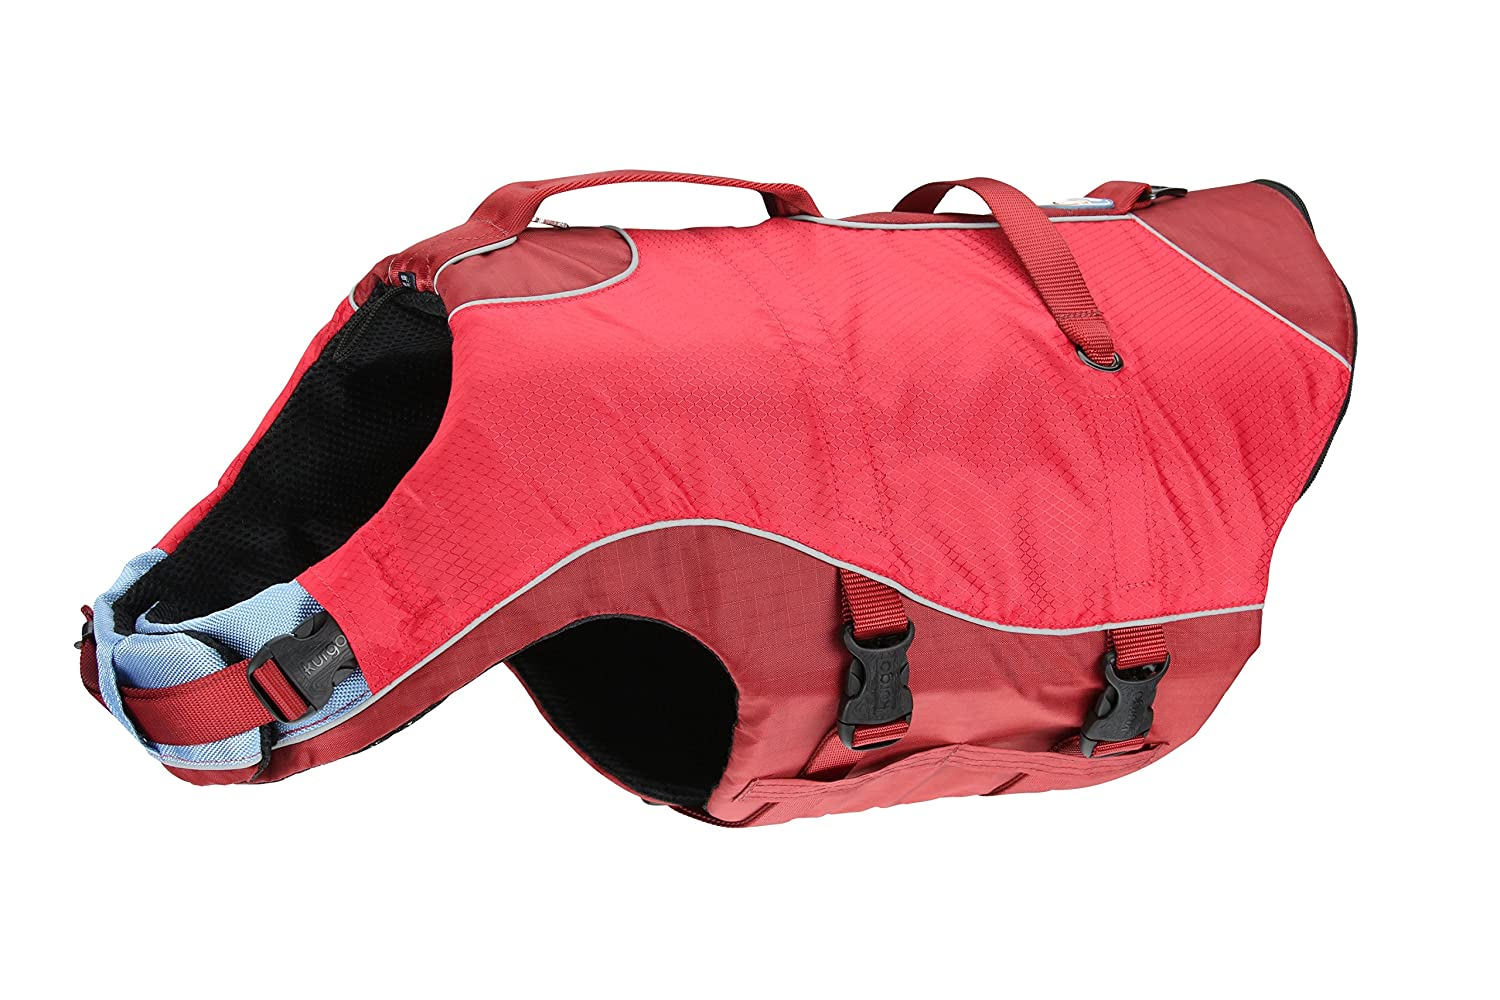 Kurgo Surf N Turf Dog Life Jacket Review